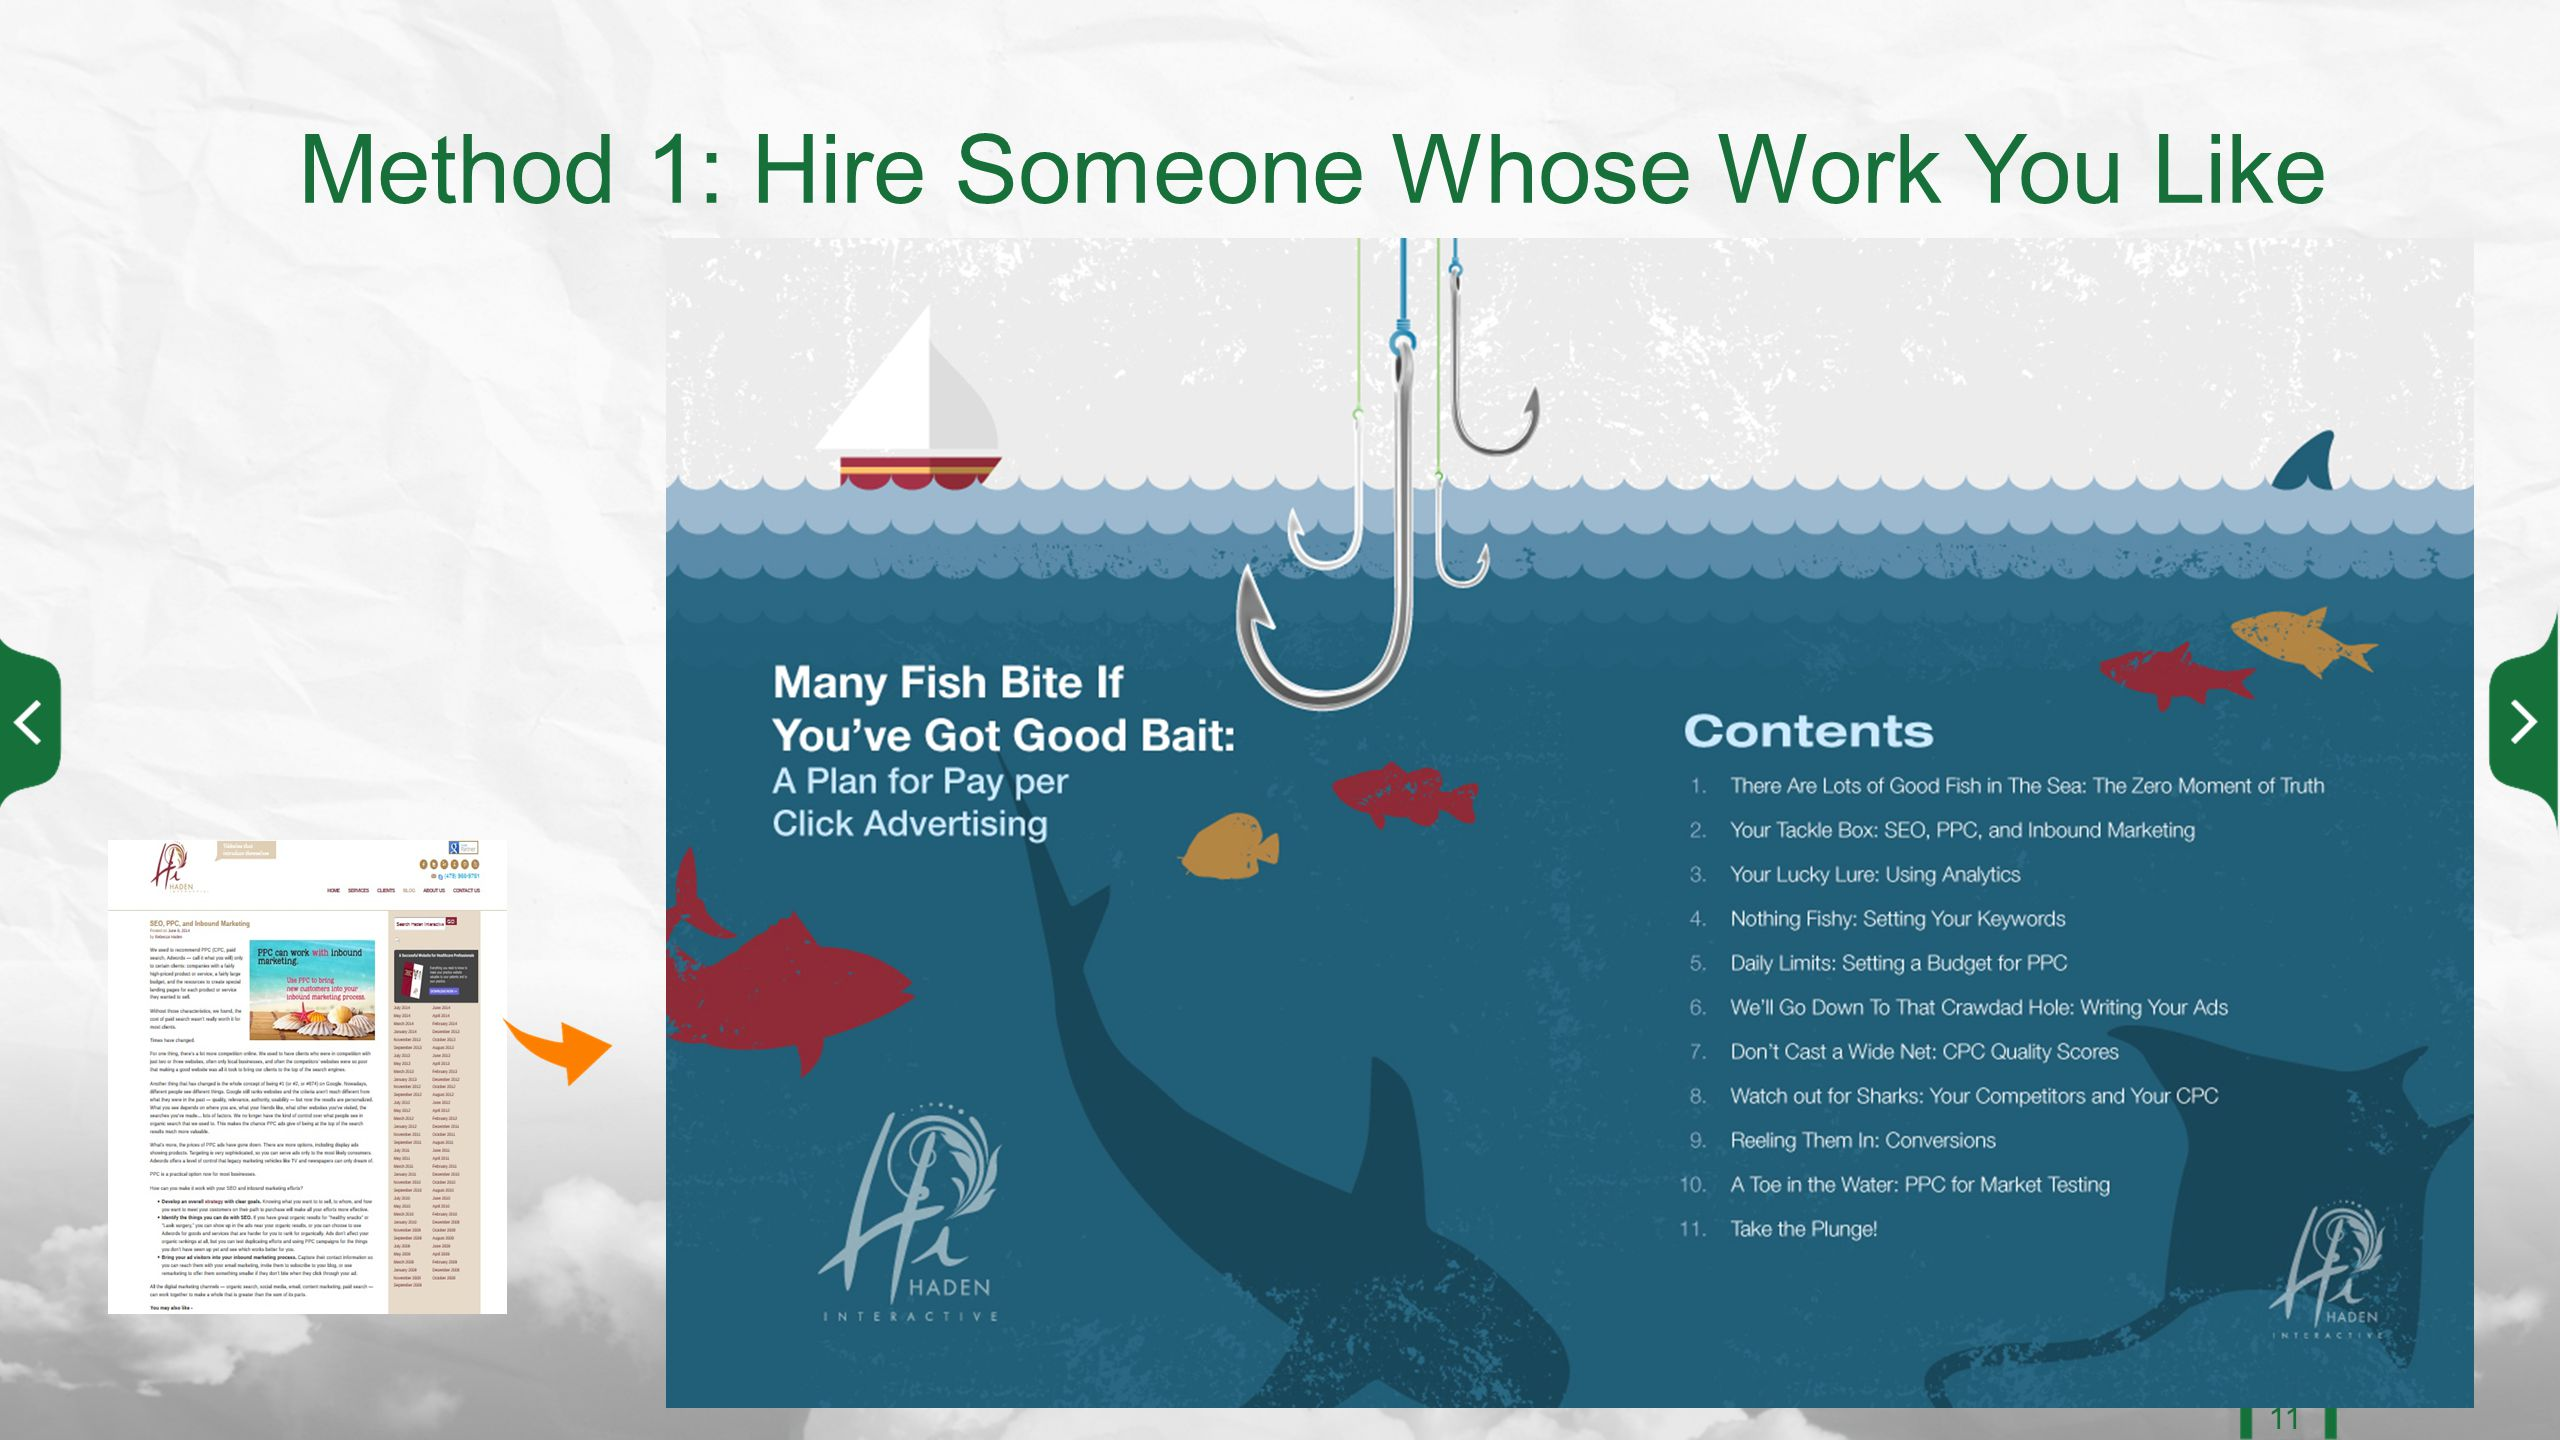 Method 1: Hire Someone Whose Work You Like 11 Hire someone whose work you like and let them do their job.